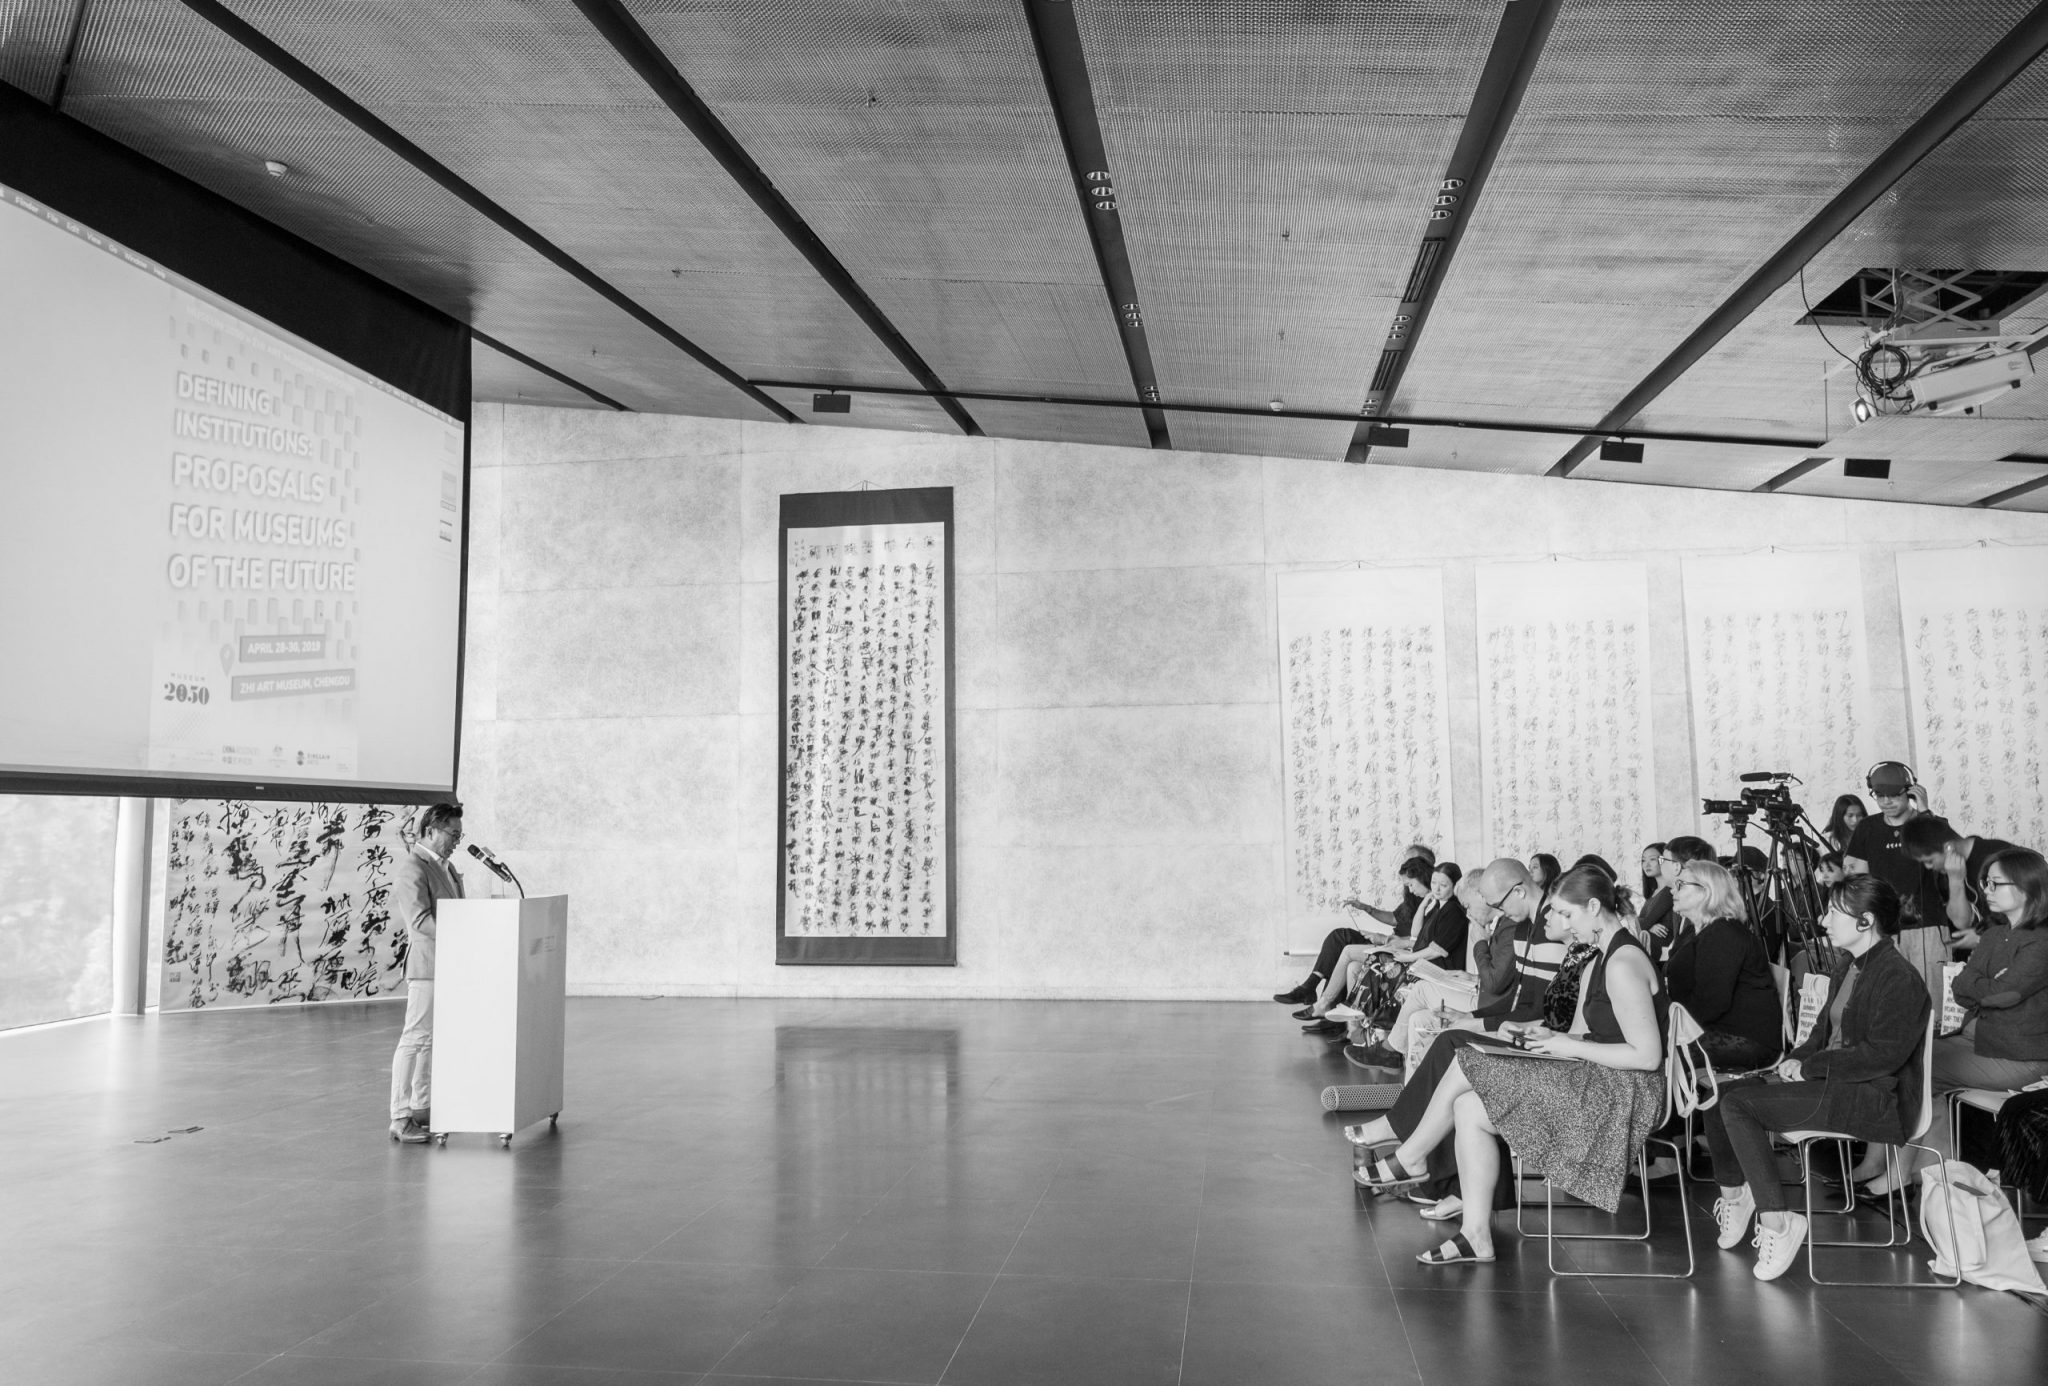 """""""Defining Institutions: Proposals for Museums of the Future"""" at Zhi Art Museum, Chengdu"""